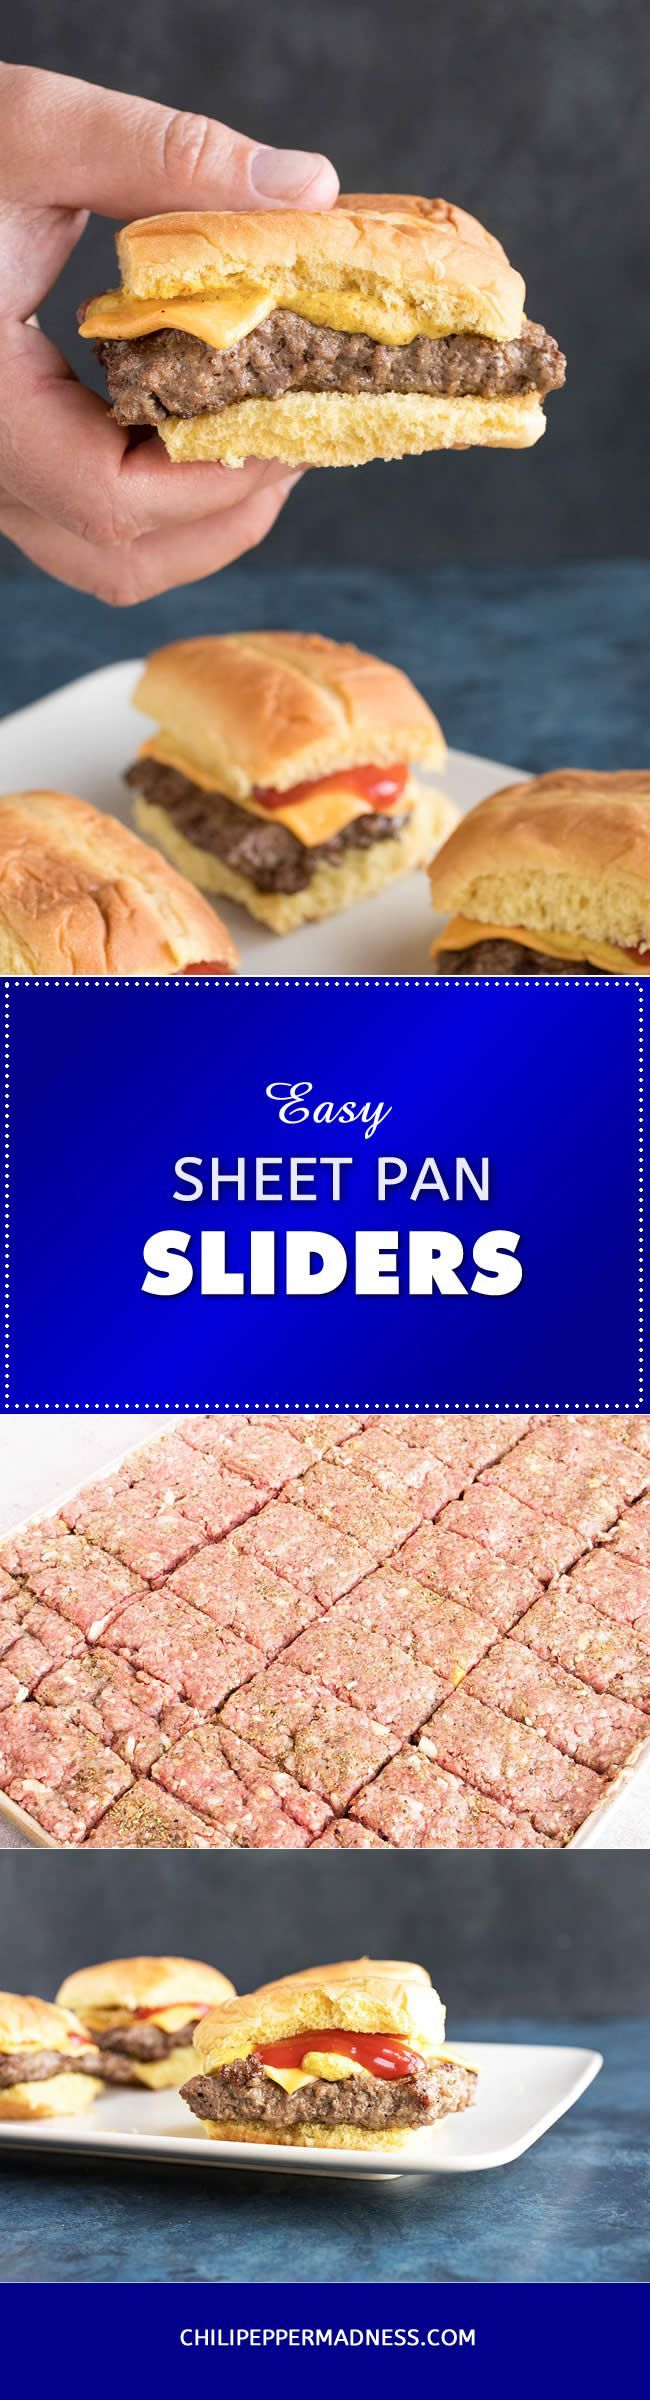 Easy Sheet Pan Sliders - Using a sheet pan helps to form perfectly shaped slider burgers. Just season the meat, press it into a sheet pan, slice and cook. Here is the method and recipe.